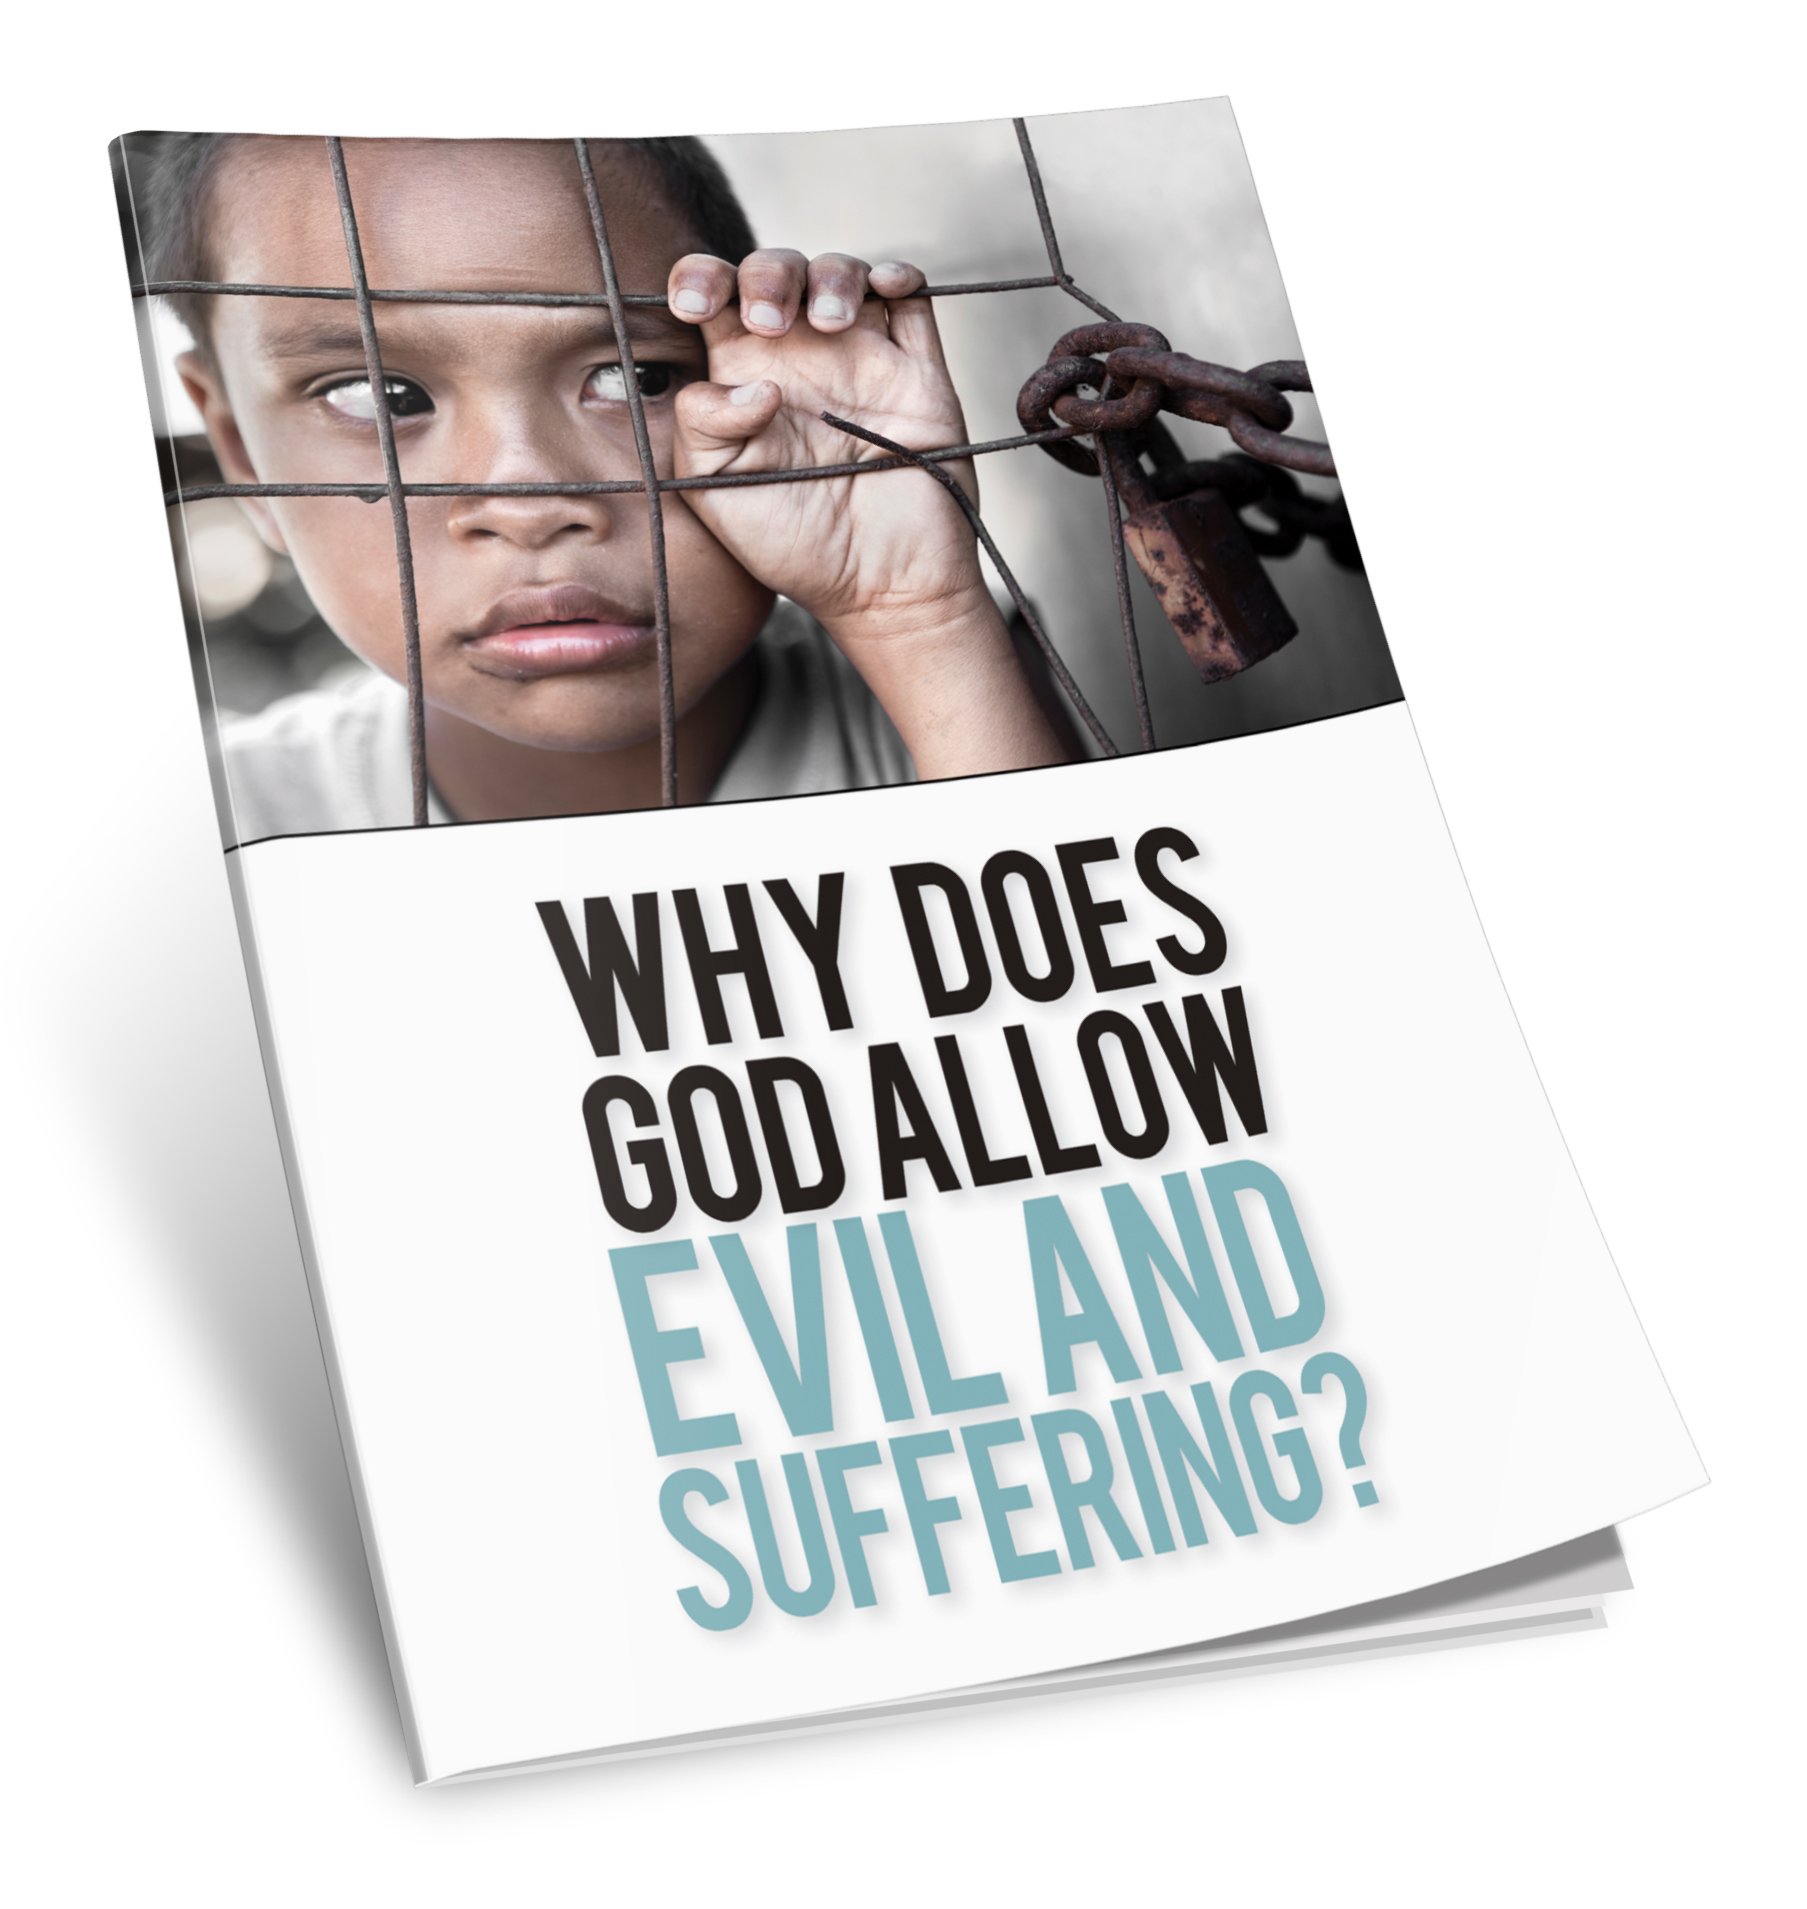 Why Does God Allow Evil and Suffering booklet cover